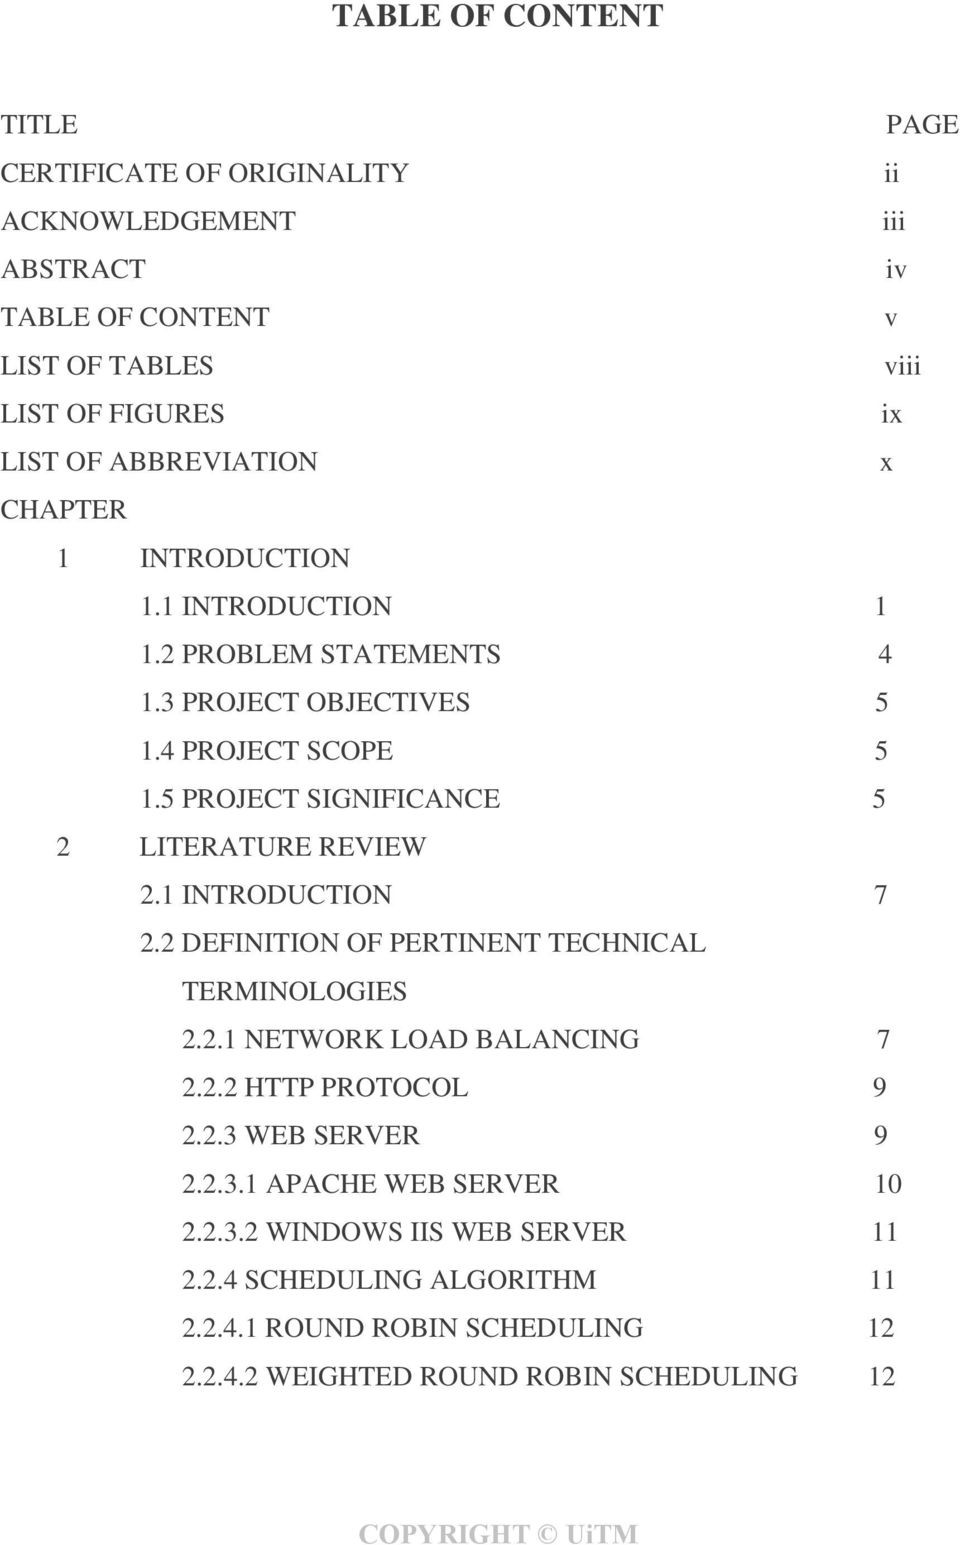 5 PROJECT SIGNIFICANCE 5 2 LITERATURE REVIEW 2.1 INTRODUCTION 7 2.2 DEFINITION OF PERTINENT TECHNICAL TERMINOLOGIES 2.2.1 NETWORK LOAD BALANCING 7 2.2.2 HTTP PROTOCOL 9 2.